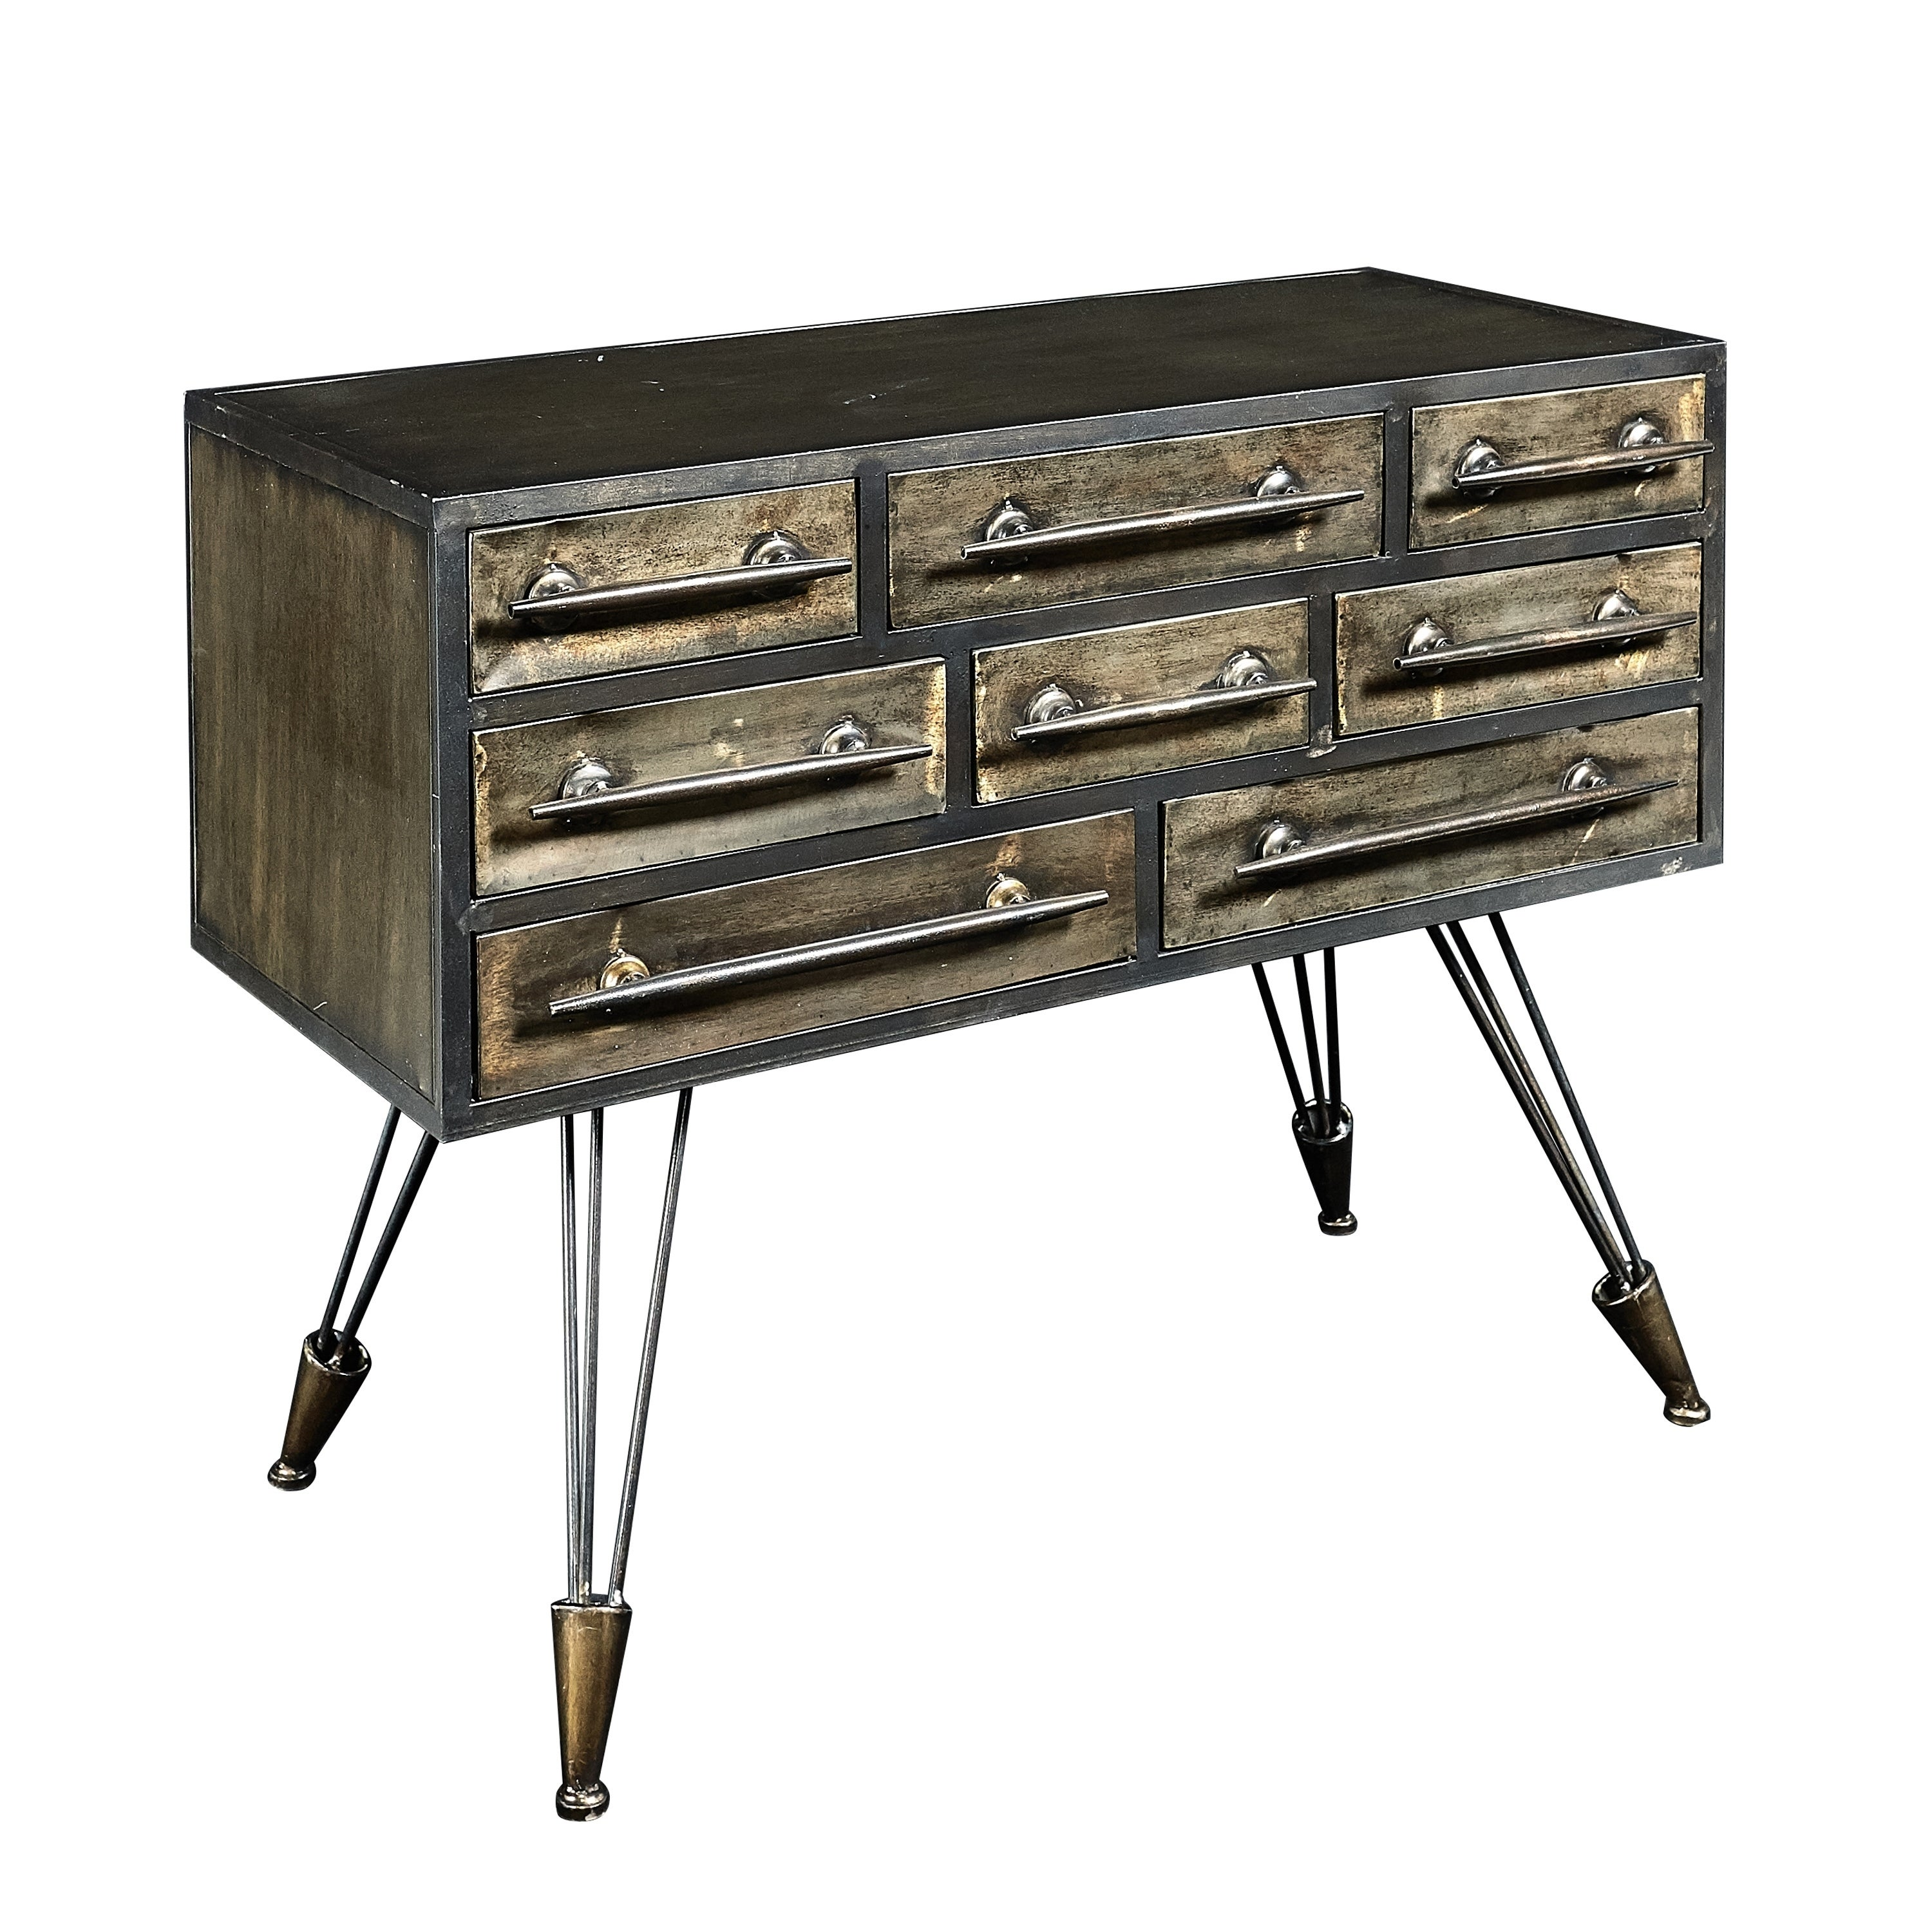 8 Drawers Metal Console Table with Hairpin Legs, Brass and Black